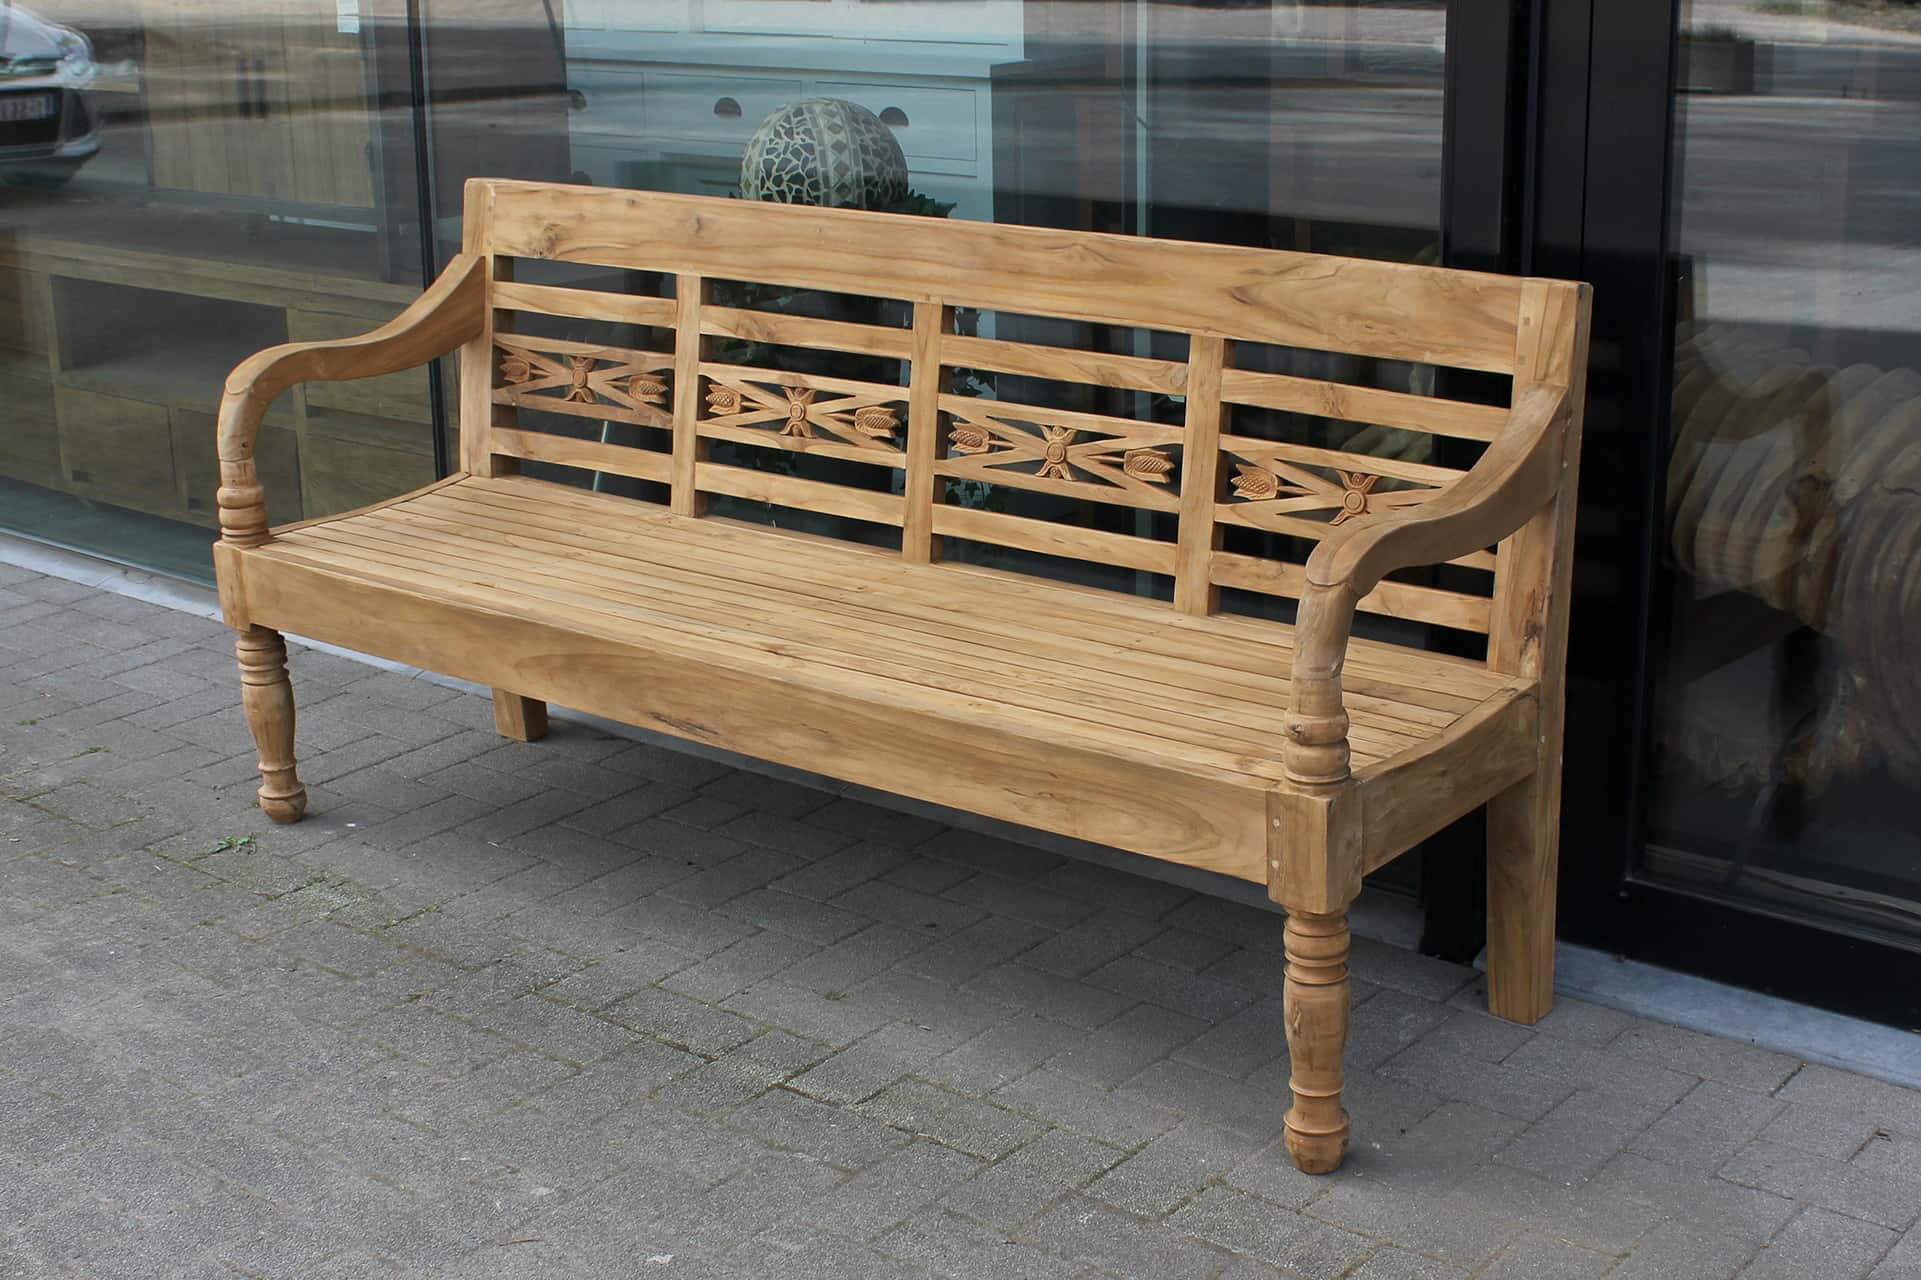 Bangku Raya O190 | luxury station bench teak from Indonesia. Luxury garden bench in untreated teak and floral design - TEAK2.